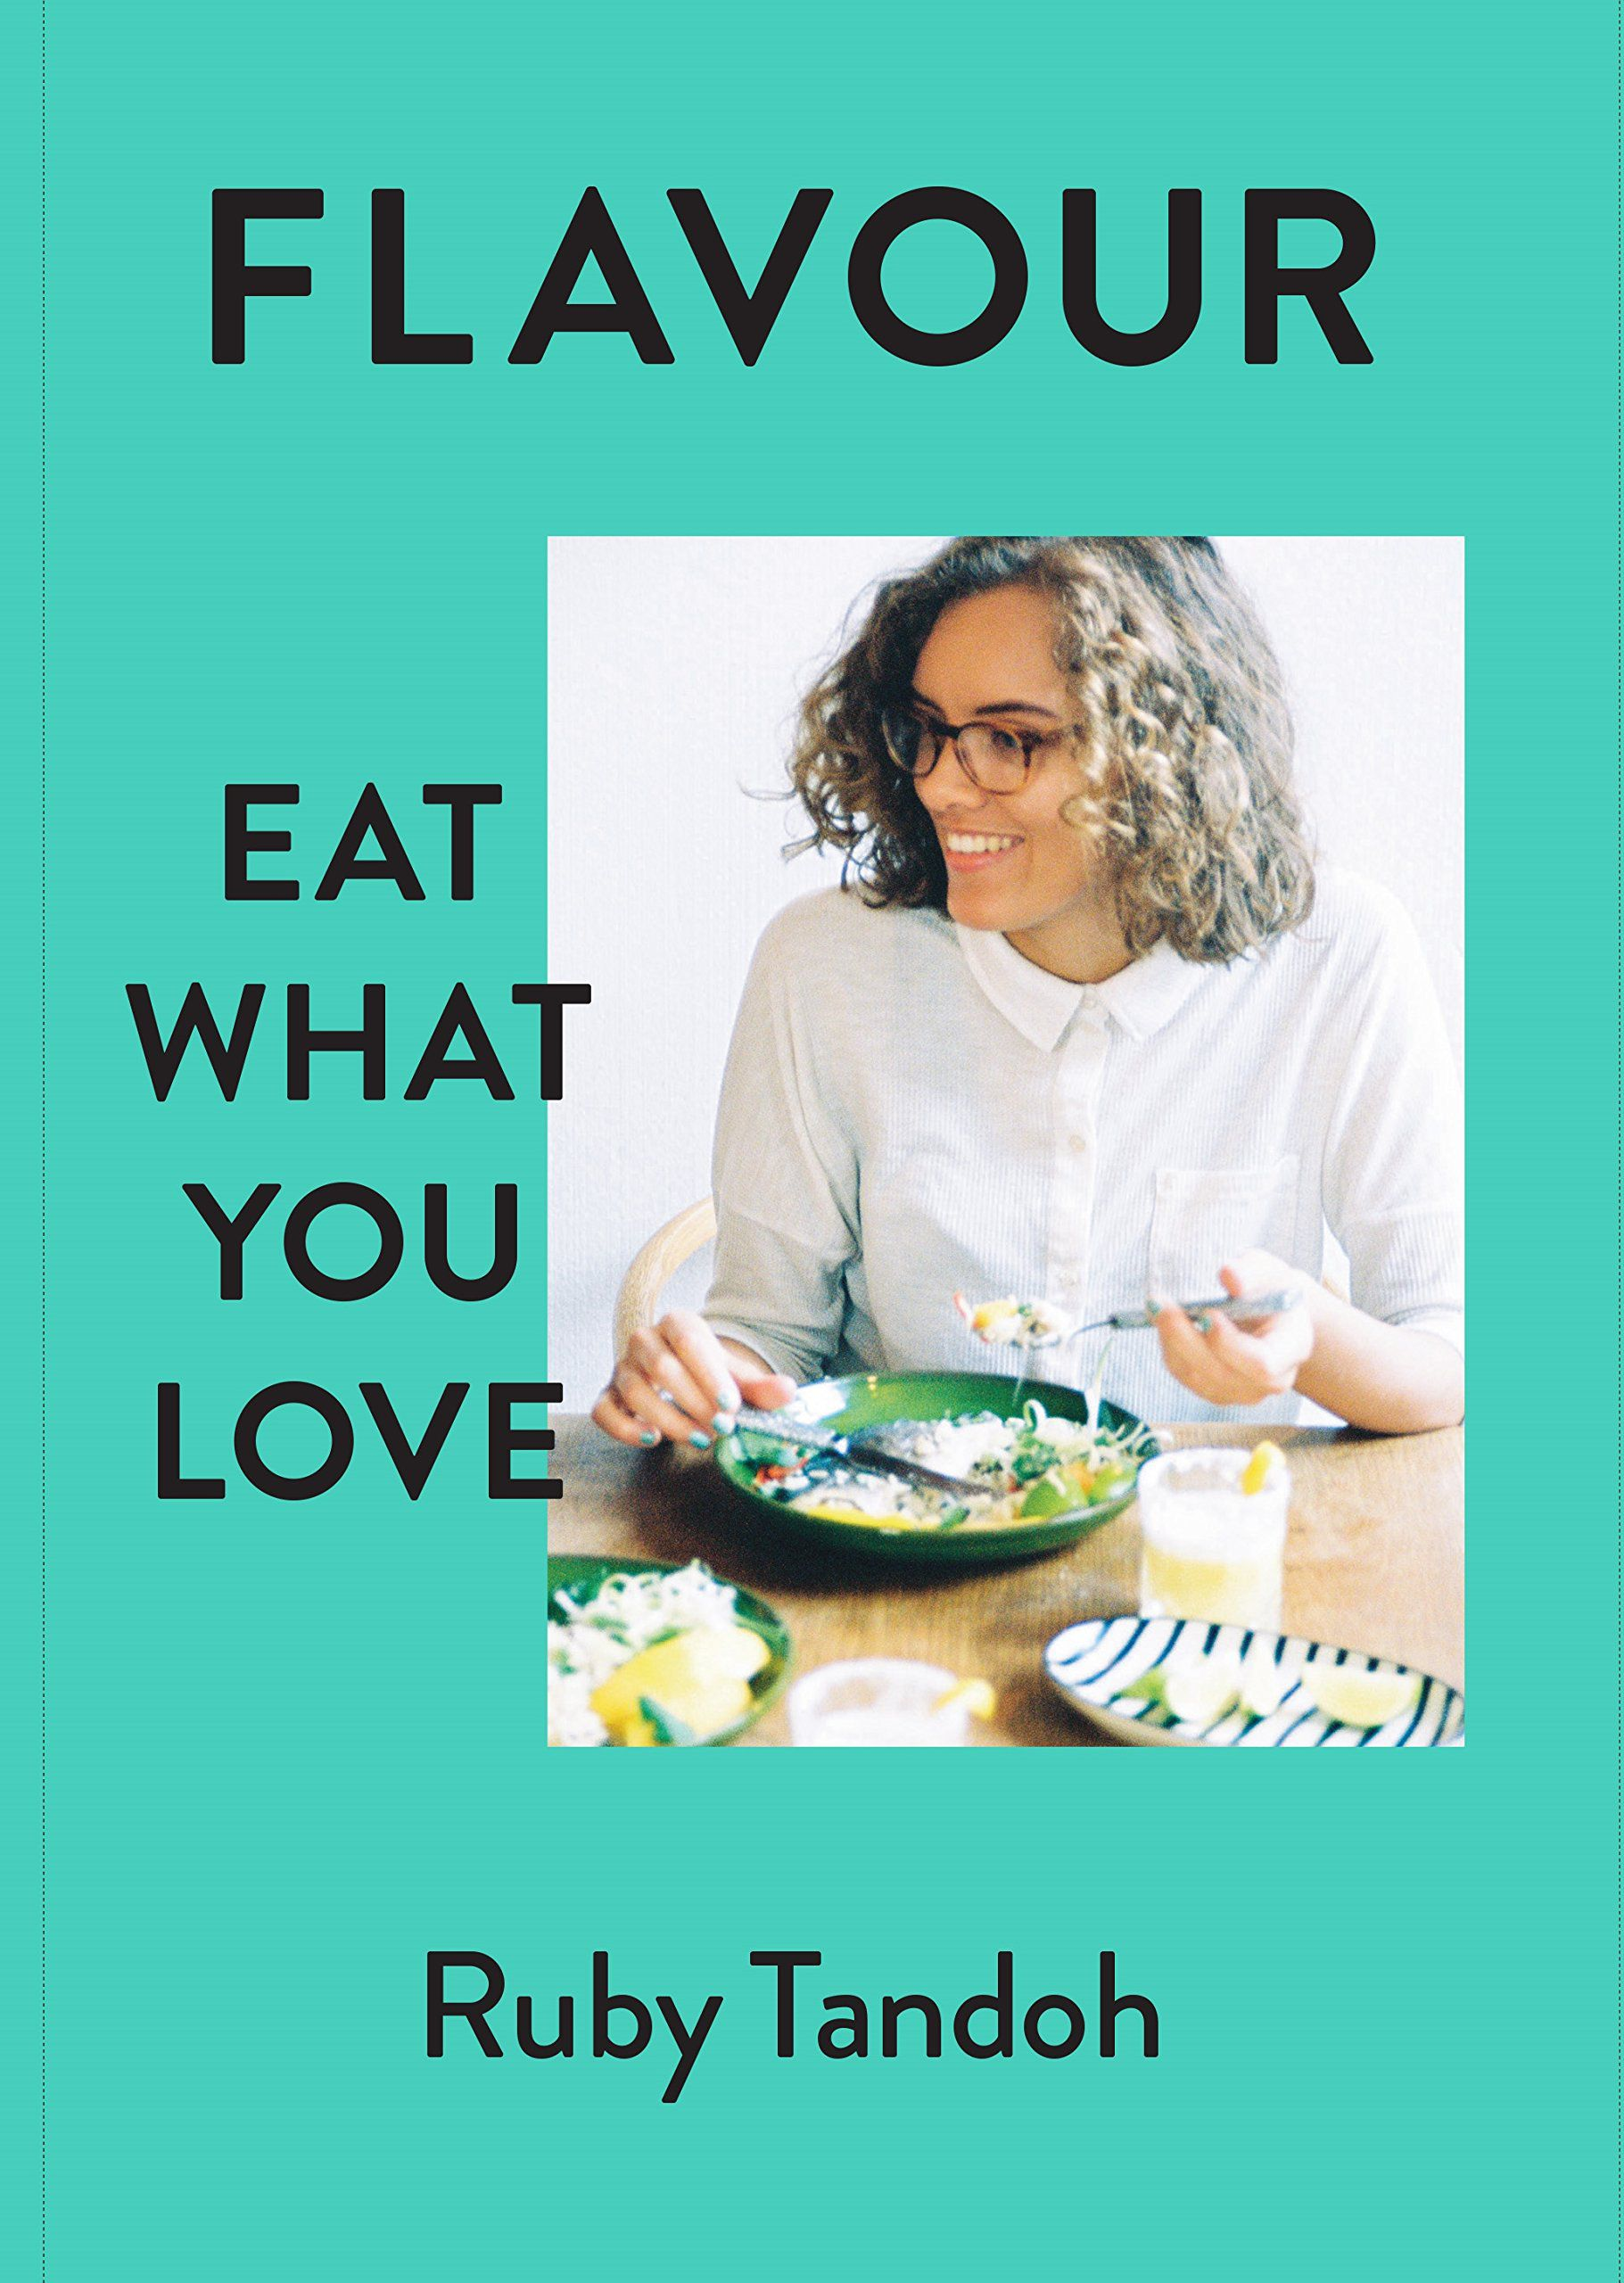 Flavour by Ruby Tandoh book cover